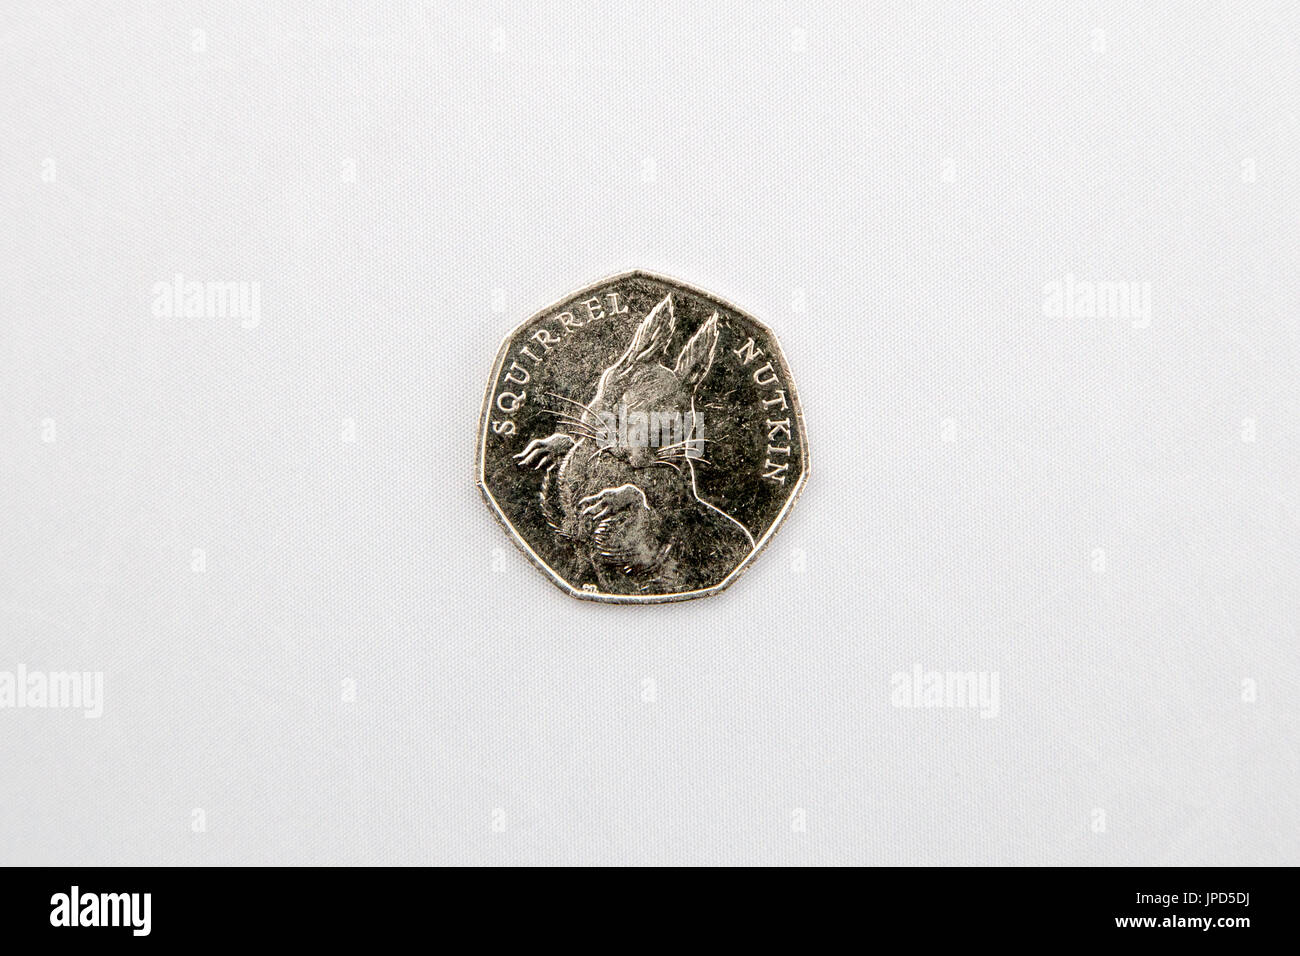 Beatrix Potter collectors British fifty pence coins in circulation jemima puddle-duck mrs tiggy-winkle squirrel nutkin - Stock Image